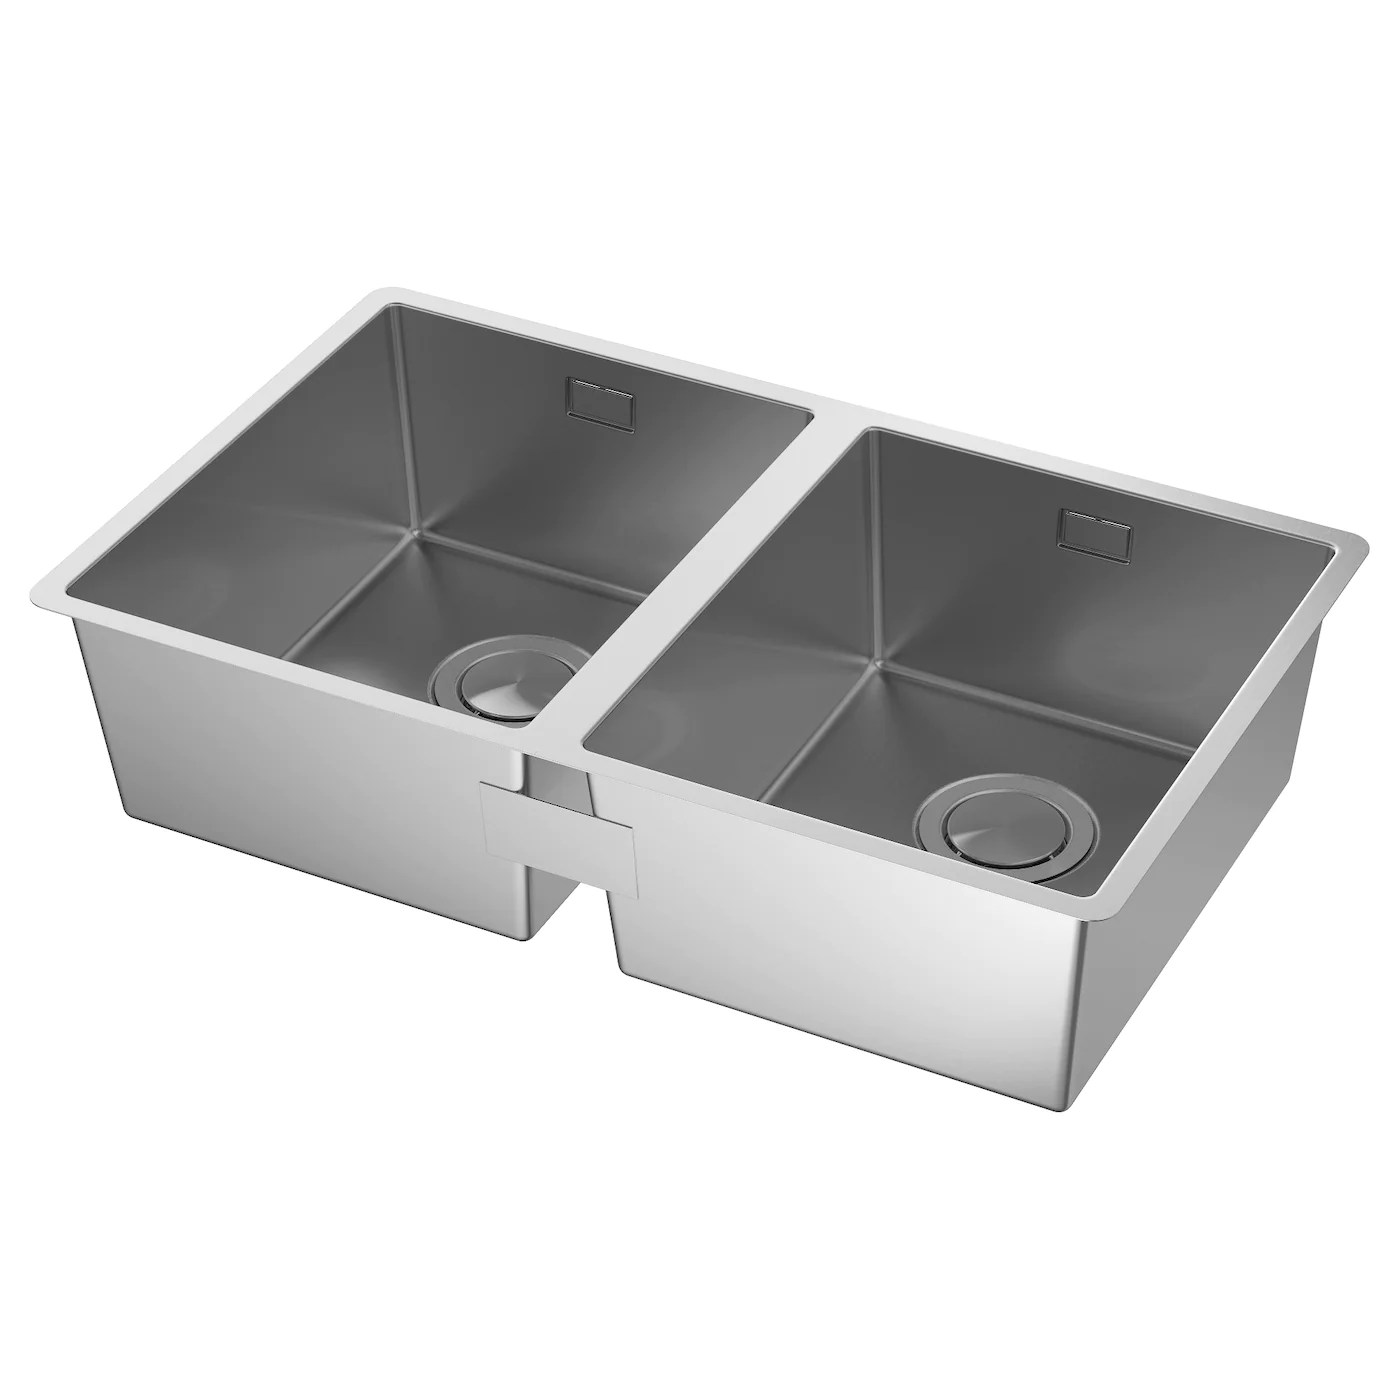 square kitchen sink how much for remodel norrsjon inset 2 bowls stainless steel 73 x 44 cm ikea 25 year guarantee read about the terms in